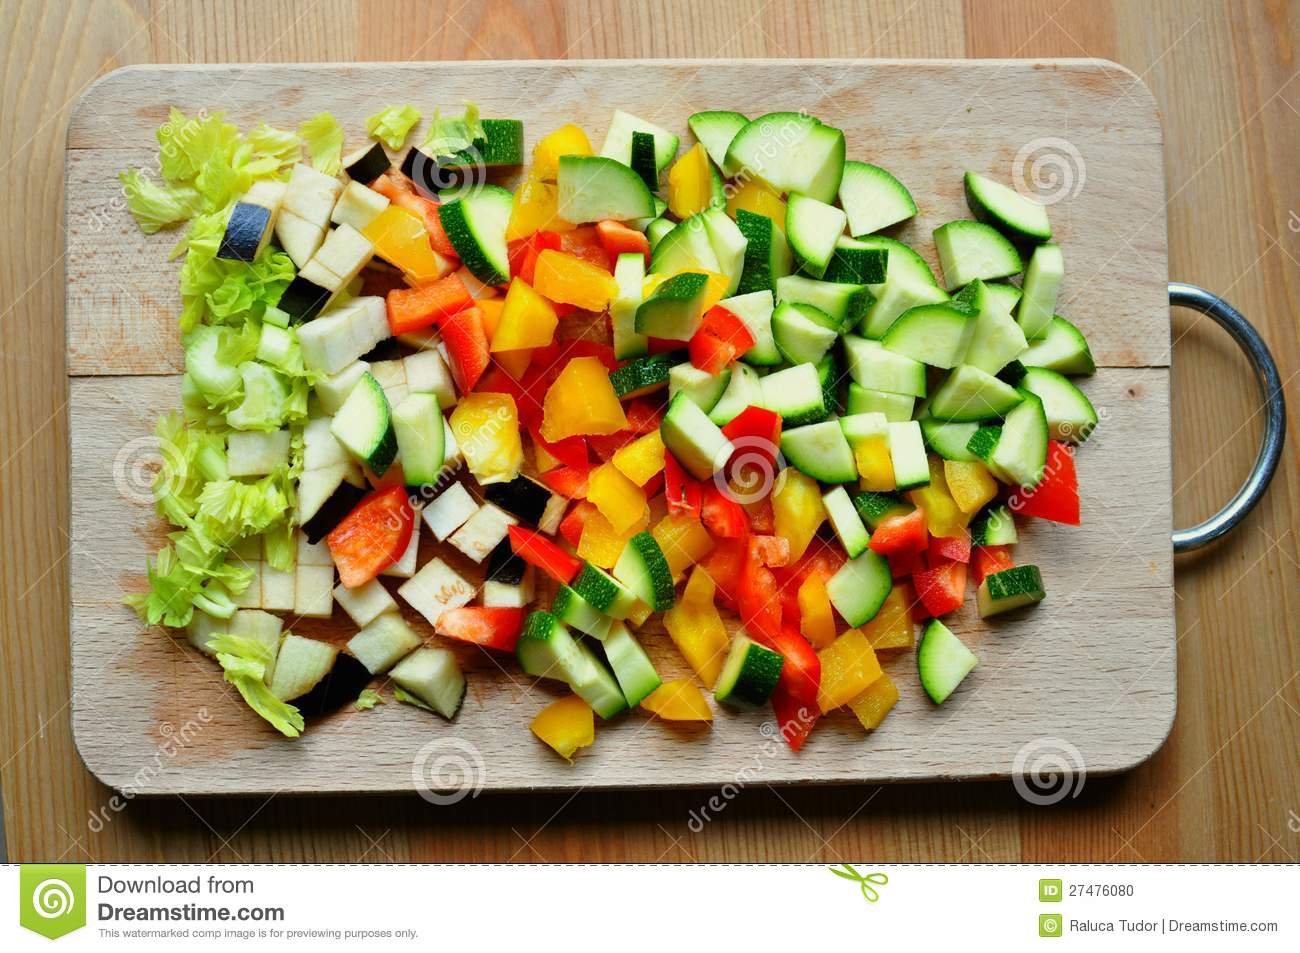 Home cooking from scratch concept with vegetables on a wooden board